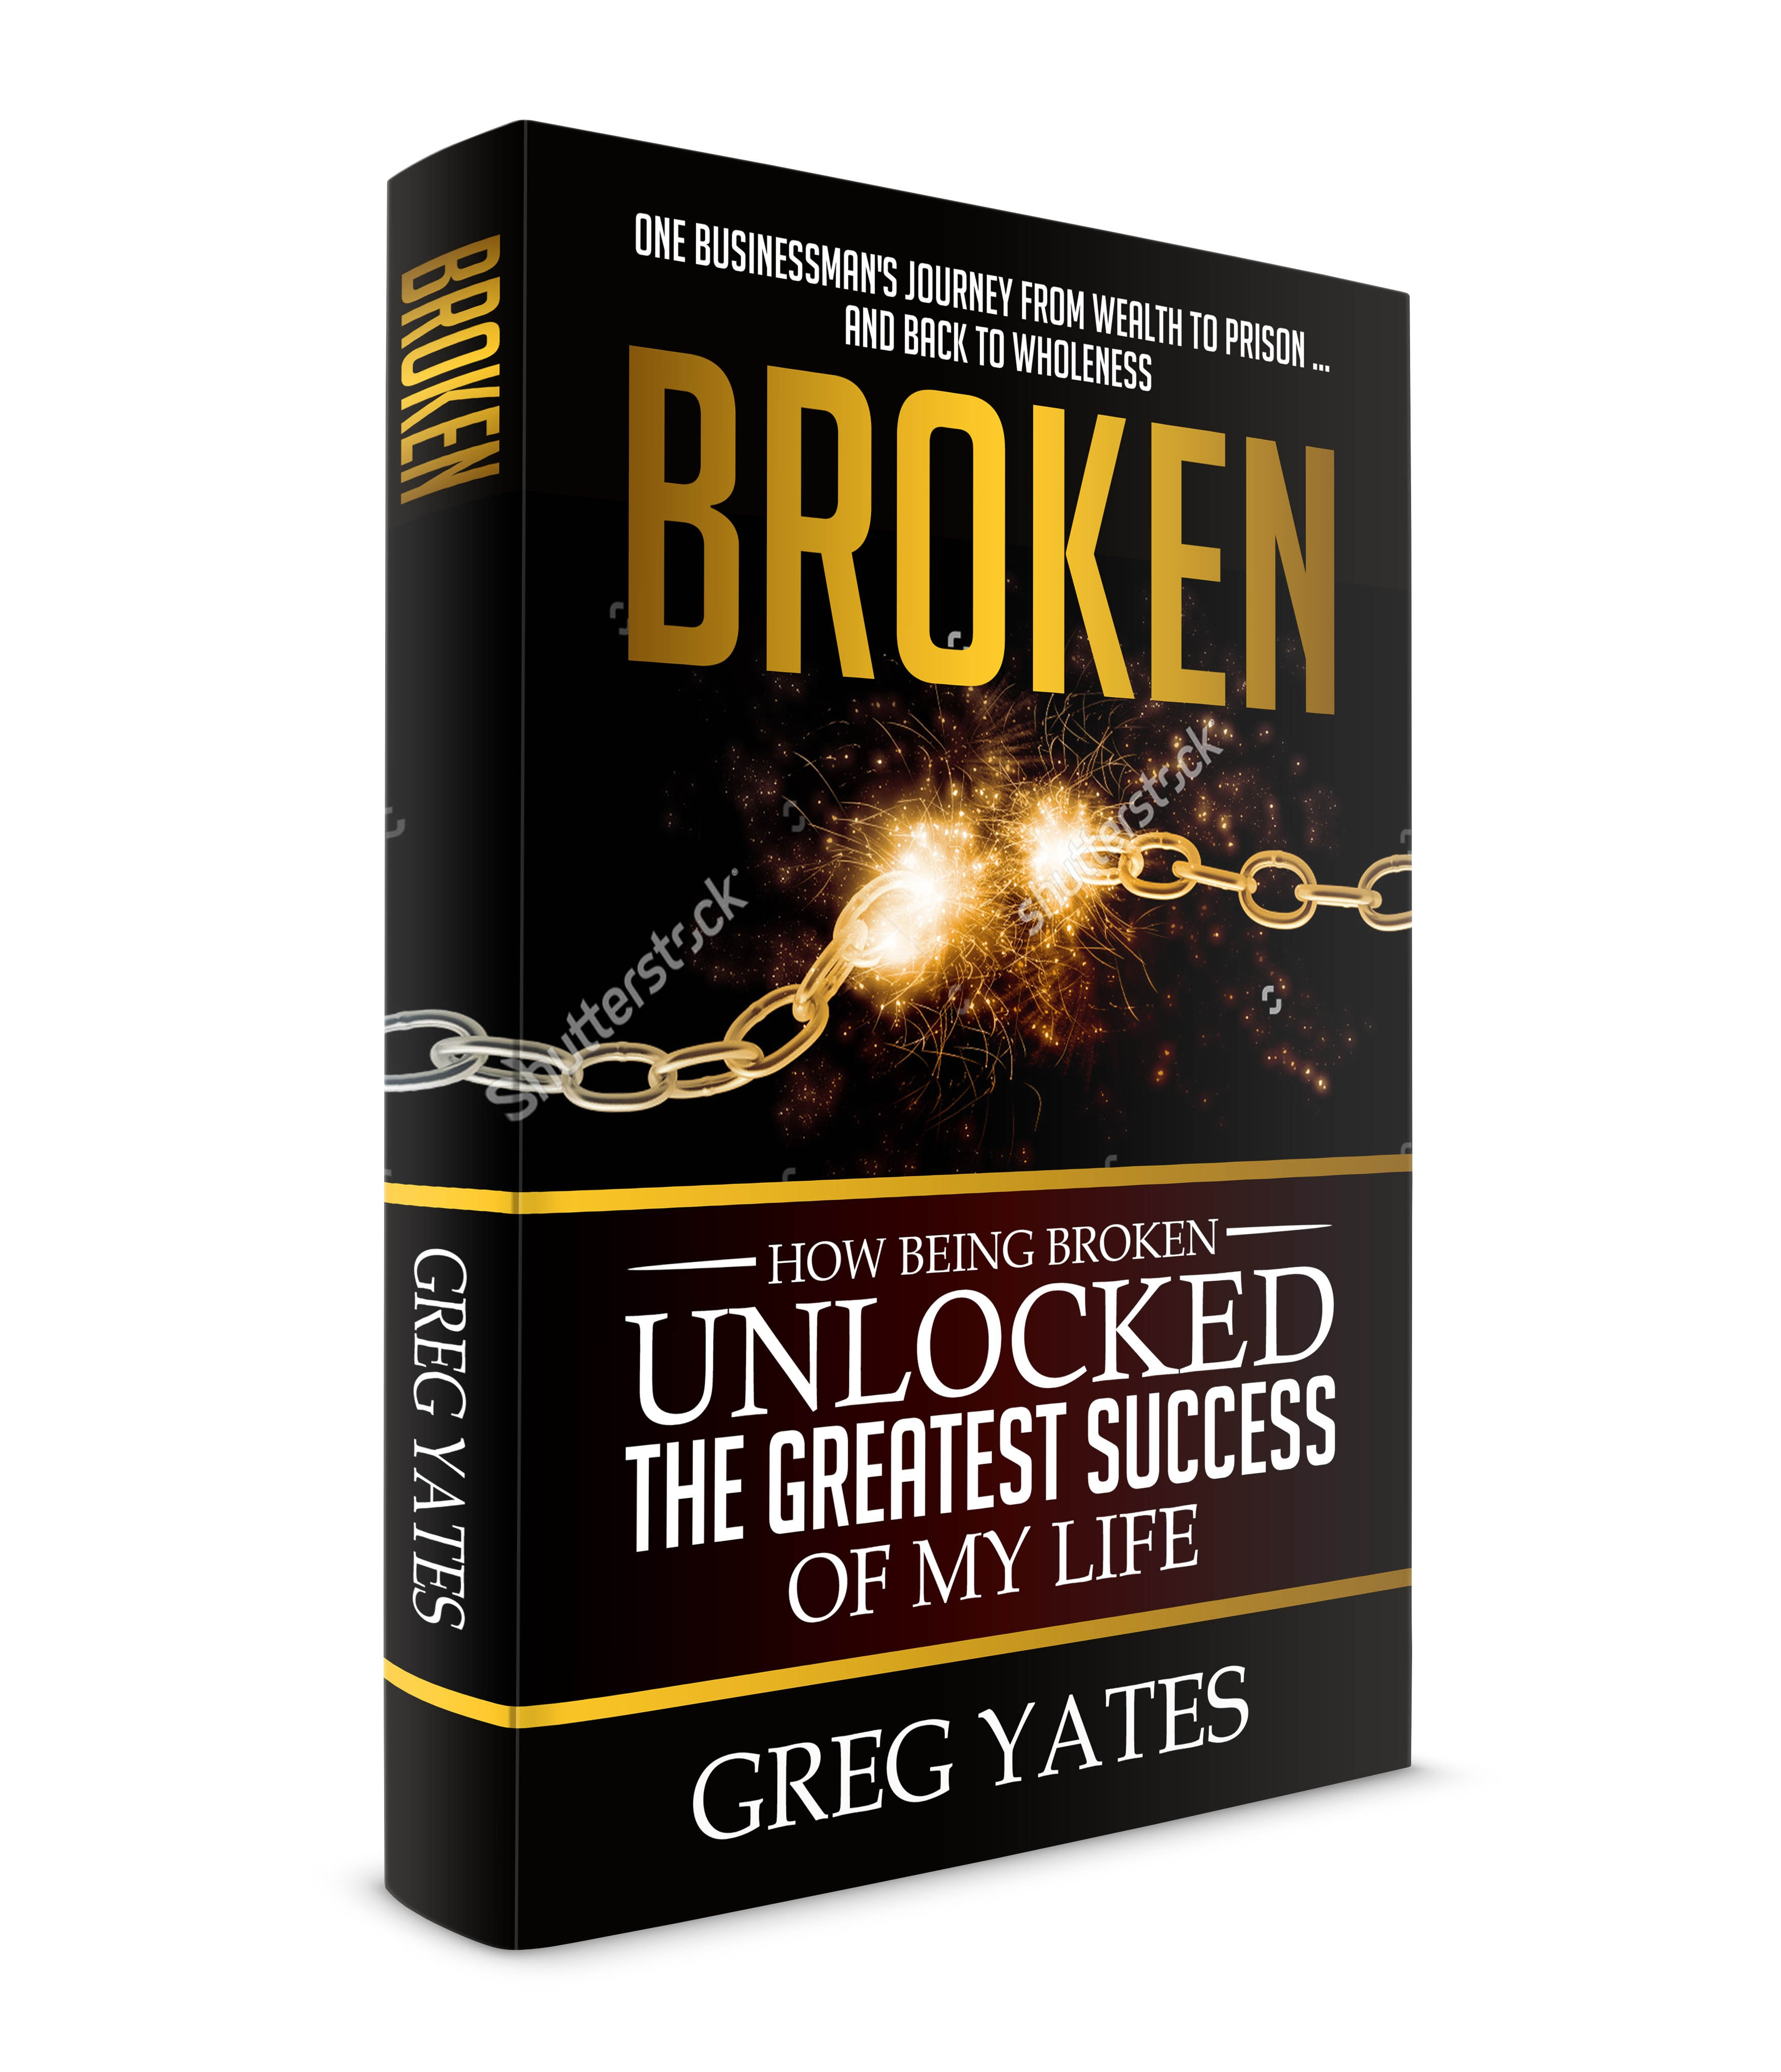 """Book cover for real life drama of a Businessman """"Broken"""" by false beliefs but ultimately restored"""